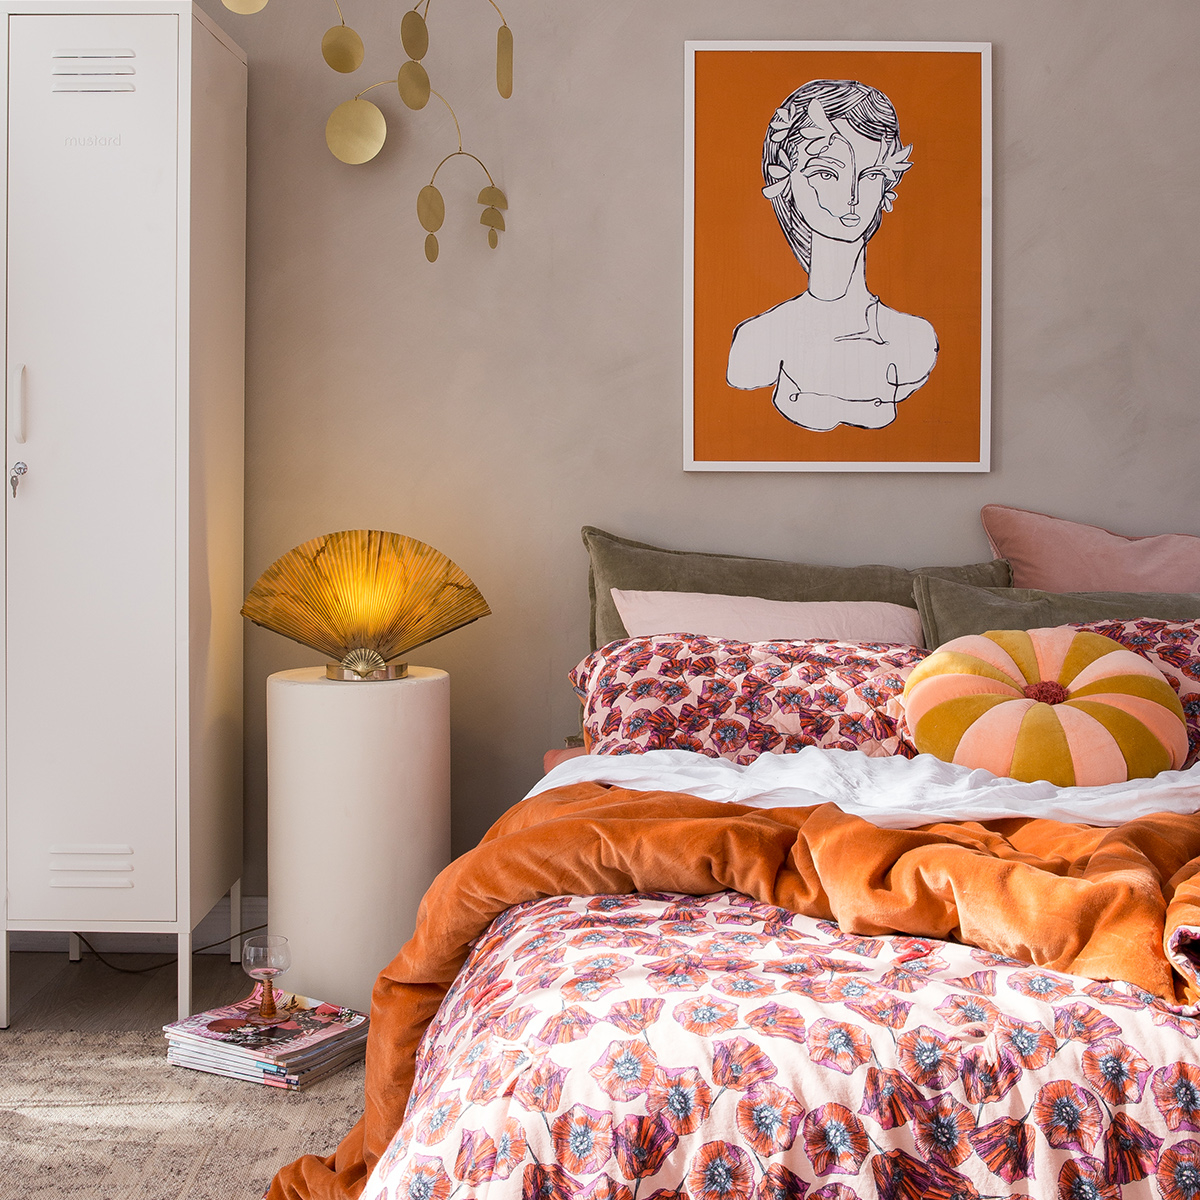 Bedroom with industrial style wardrobe, orange artwork and orange patterned bedding. From The New Mindful Home interior book by Joanna Thornhill